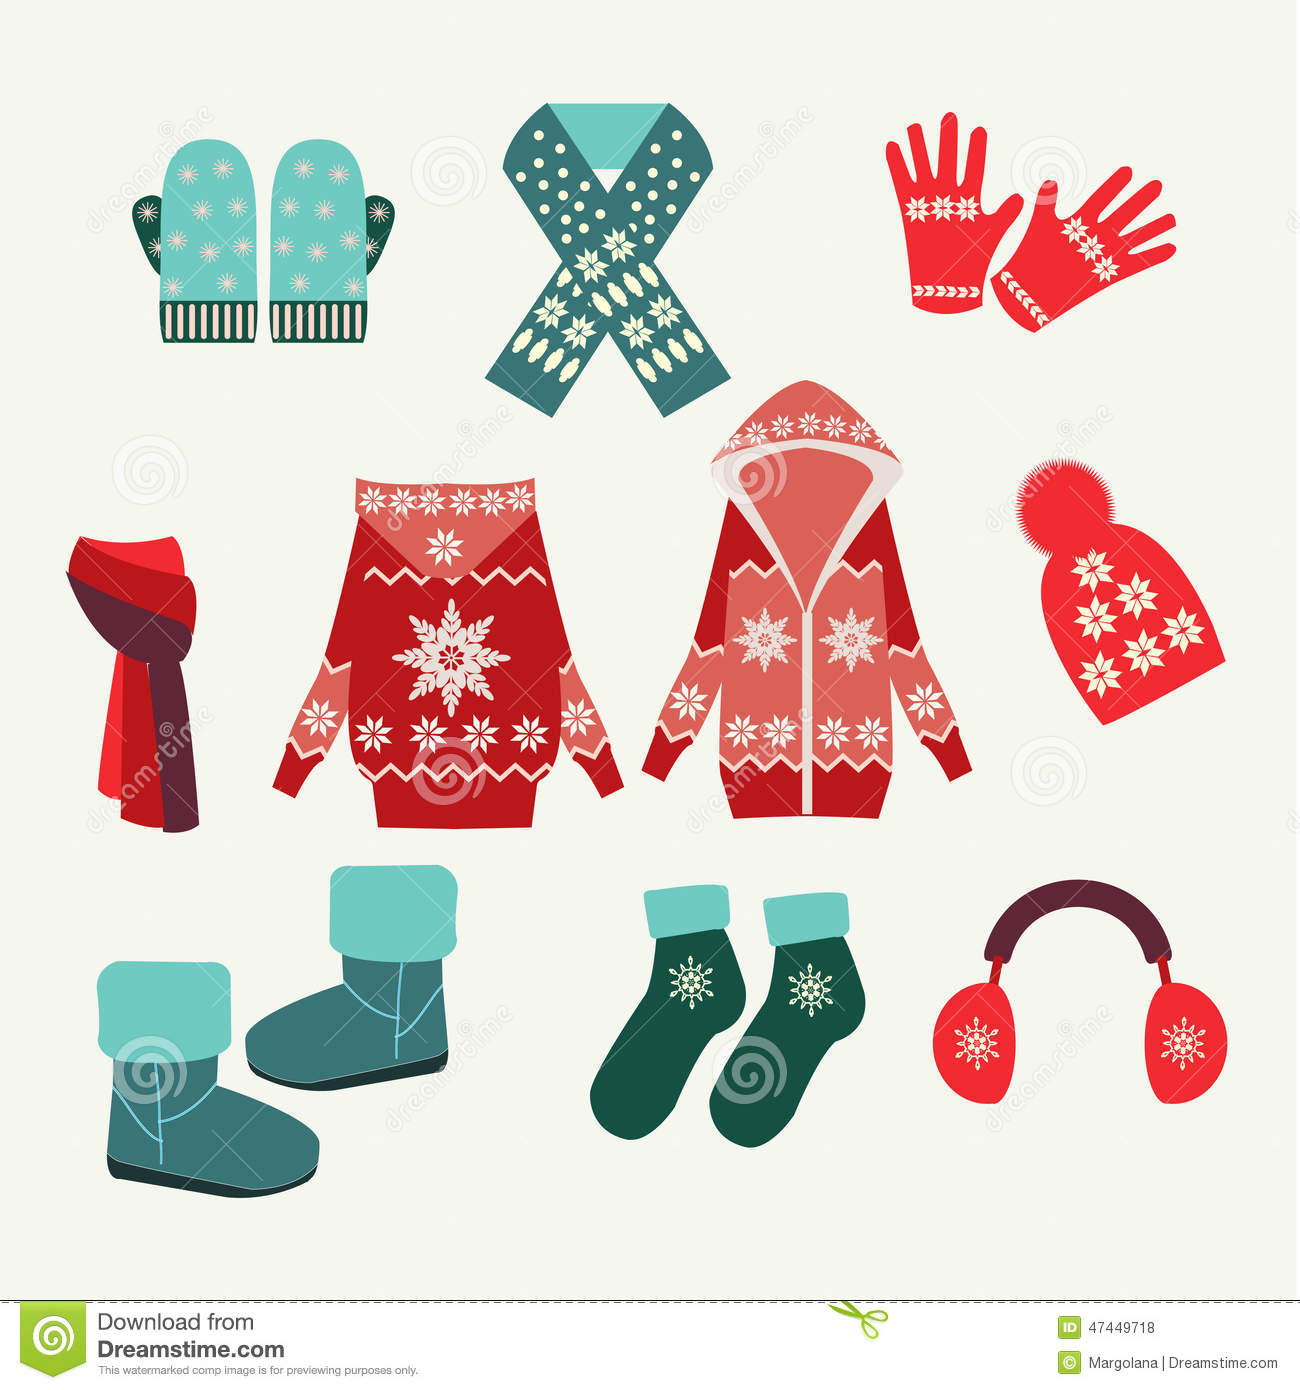 Vector Set Of Winter Clothing Illustration Stock Vector Image 47449718